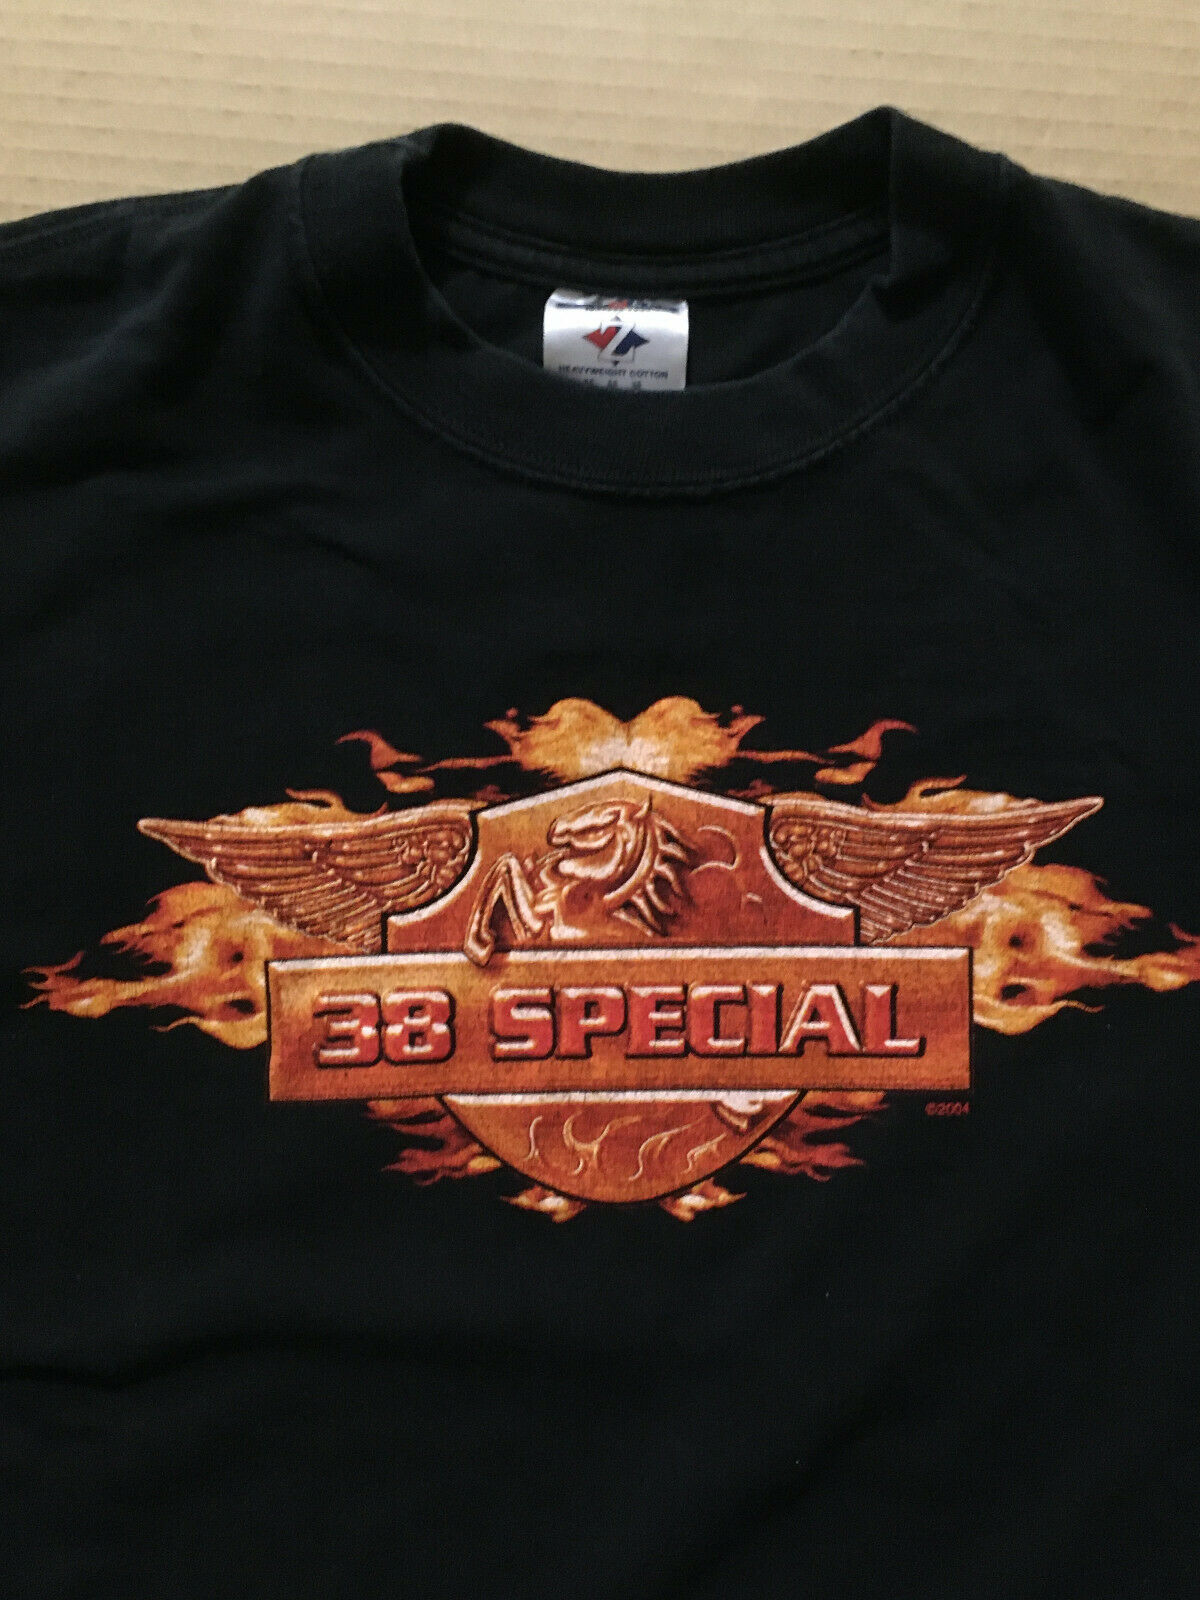 38 SPECIAL Limited 2004 DOUBLE SIDED T SHIRT w/TAG of Drivetrain CD thirty Eight